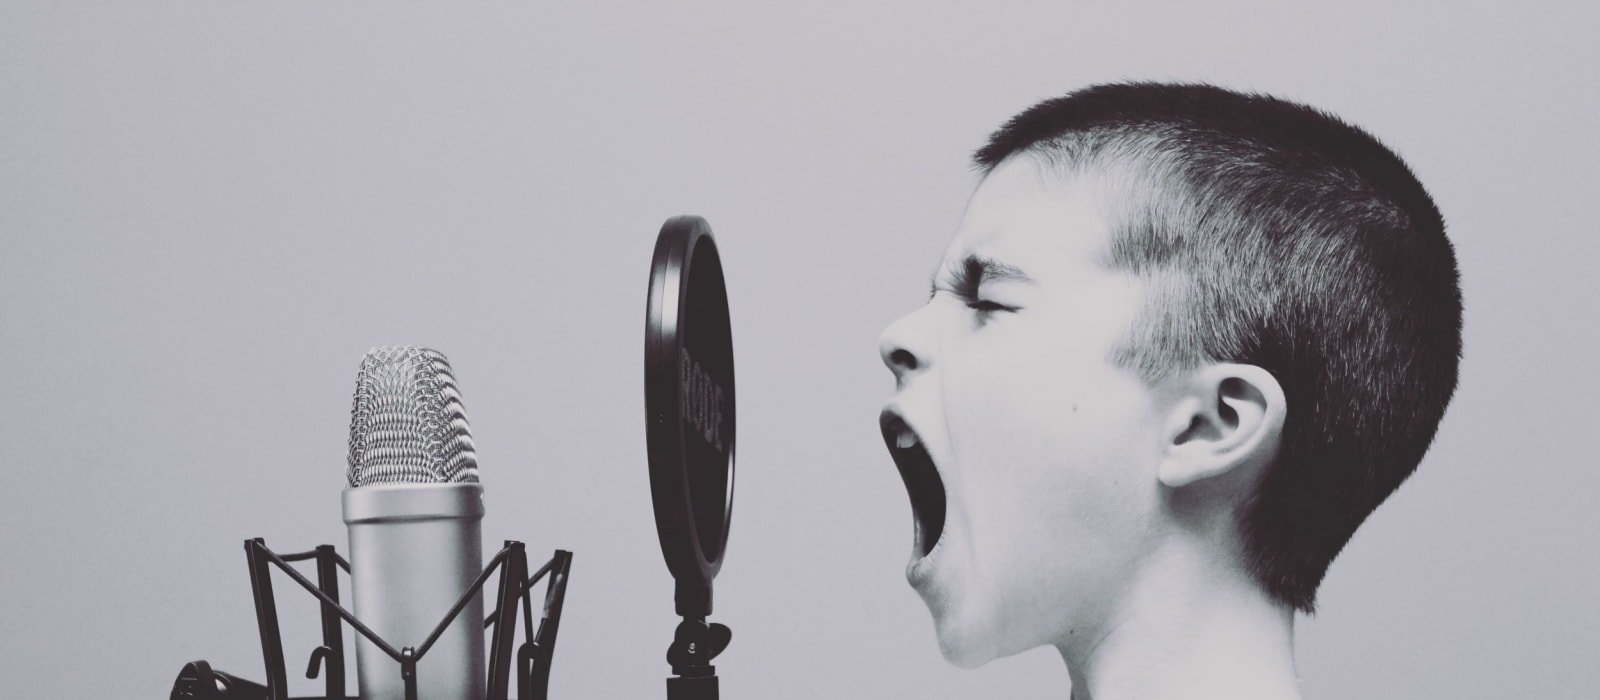 Boy singing loudly into a microphone. Photo by @jasonrosewell on Unsplash